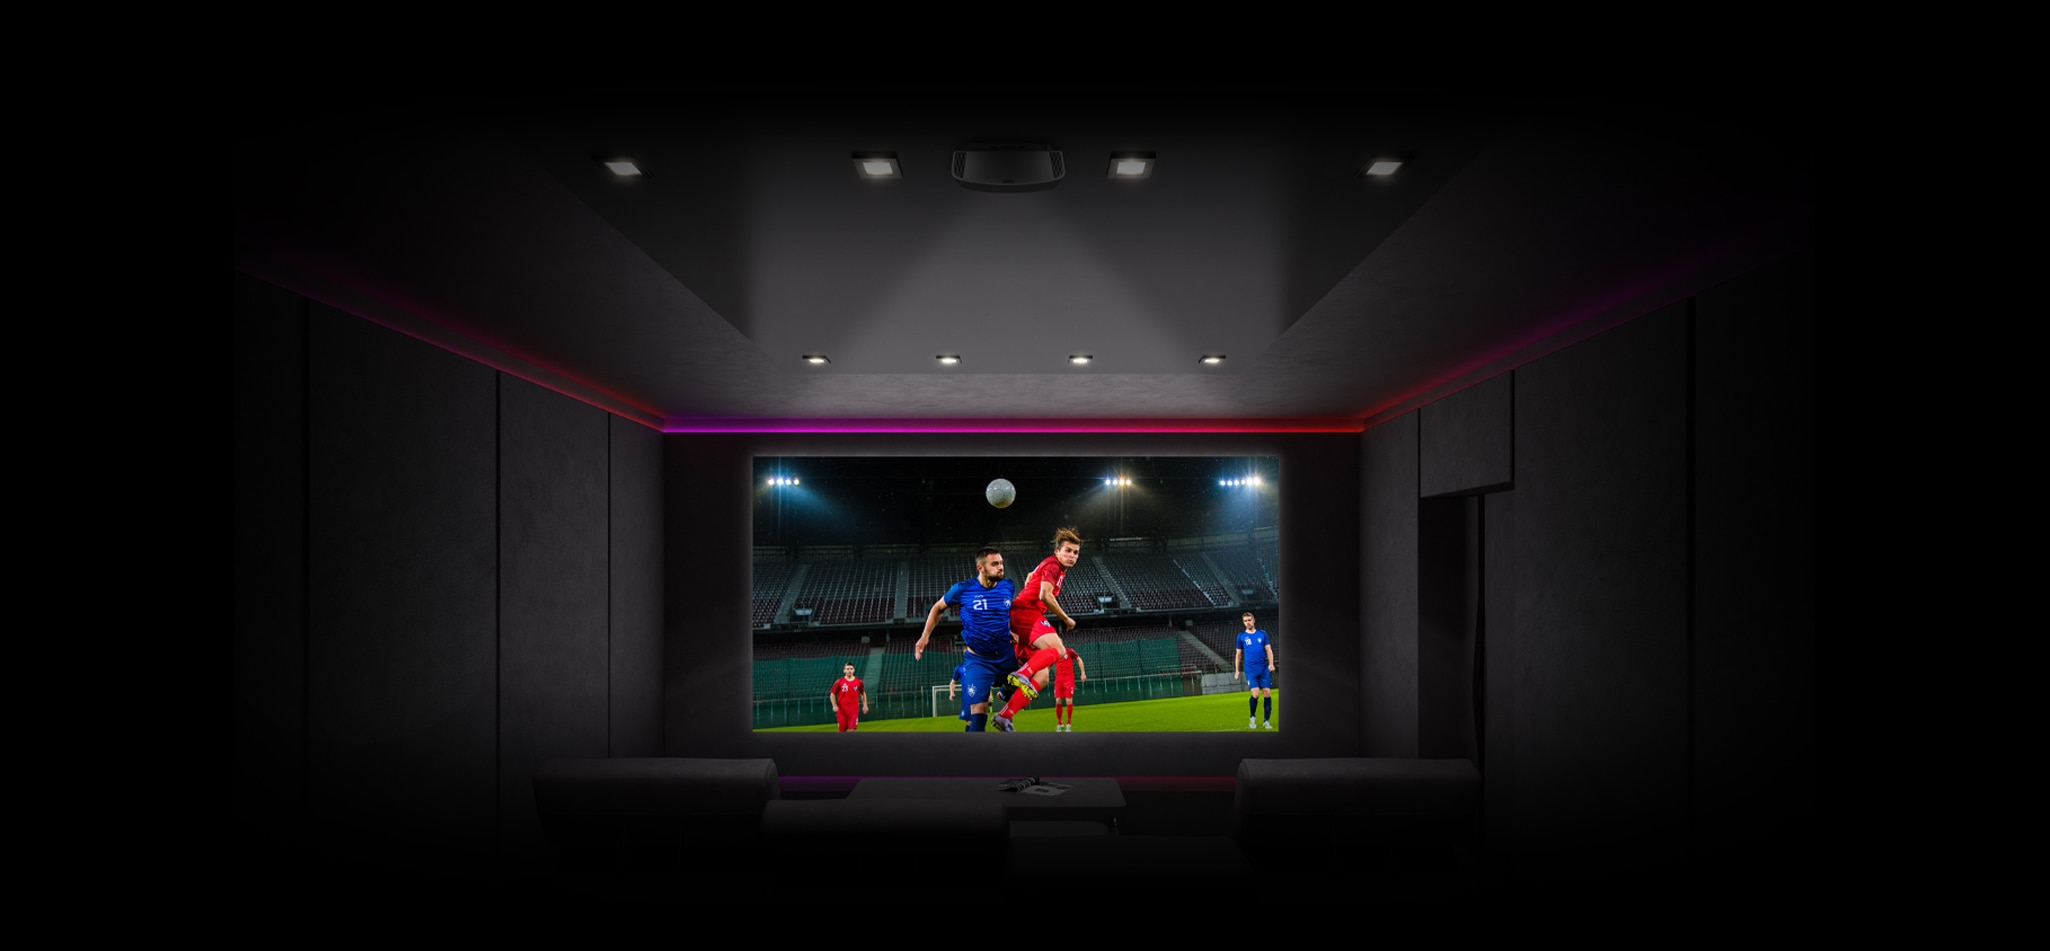 Image showing a home cinema with a projector showing a game of football. The stadium is empty due to social distancing rules.